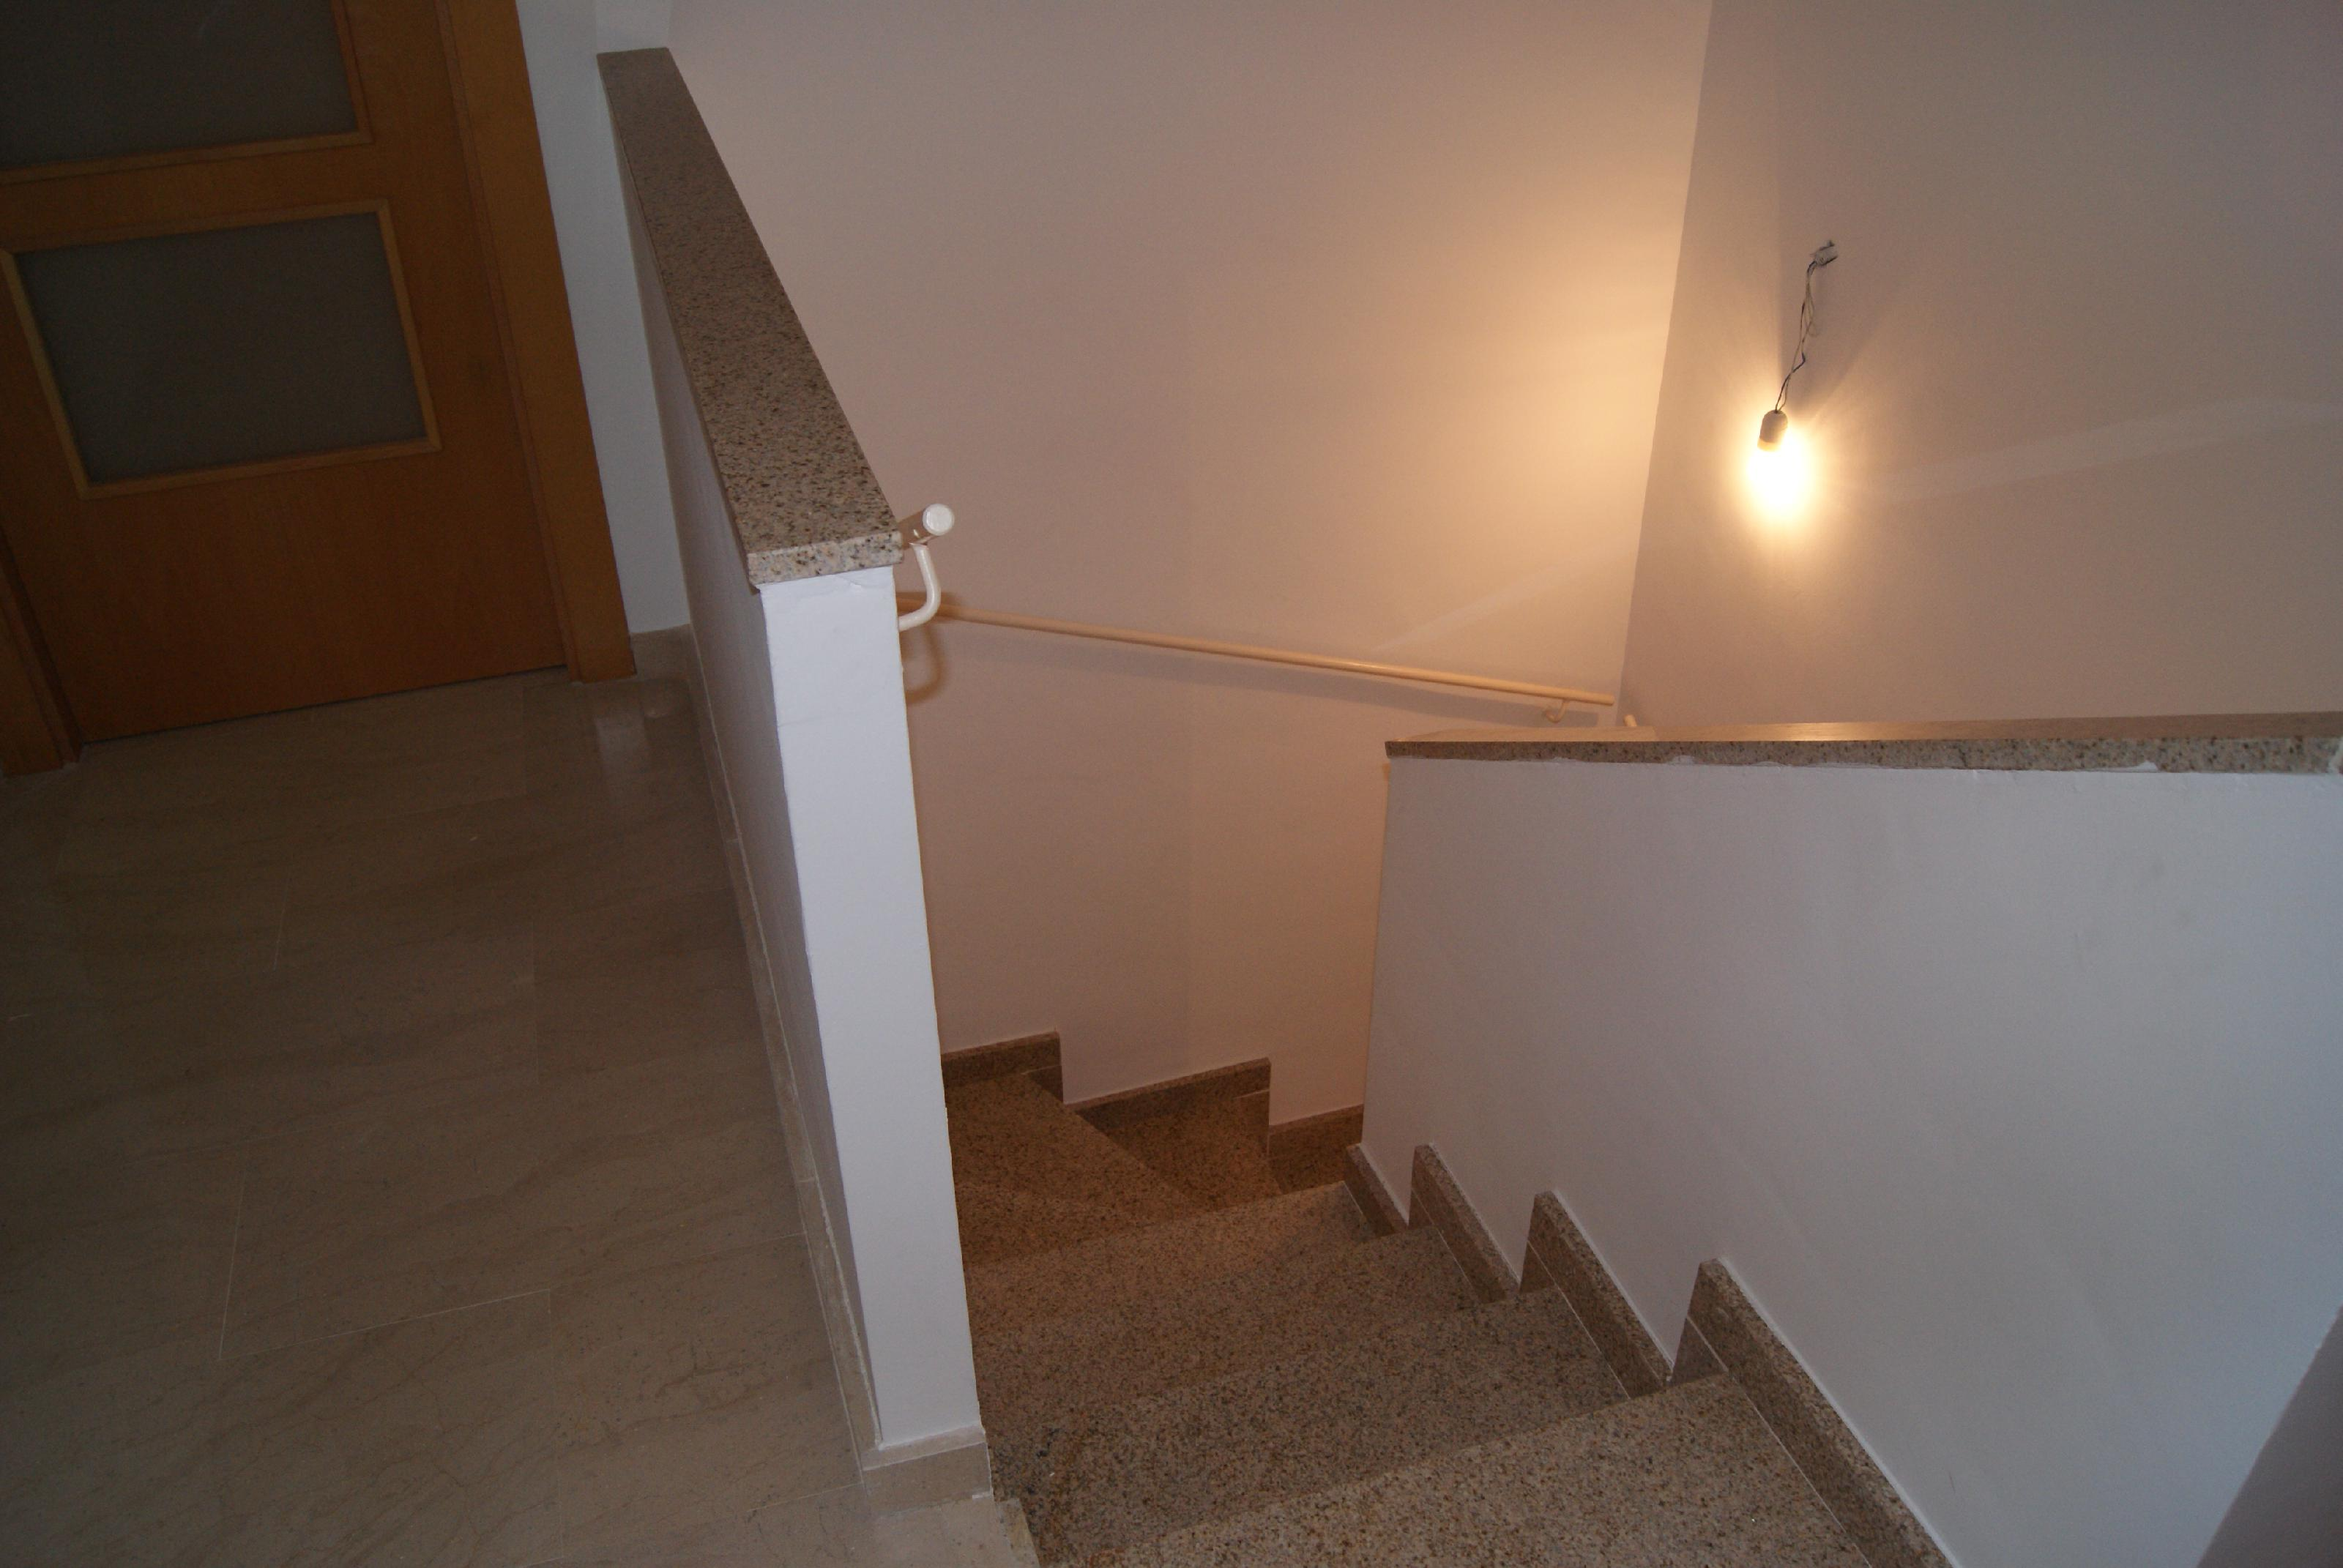 235222 Duplex for sale in Sants-Montjuïc, La Marina de Port 22